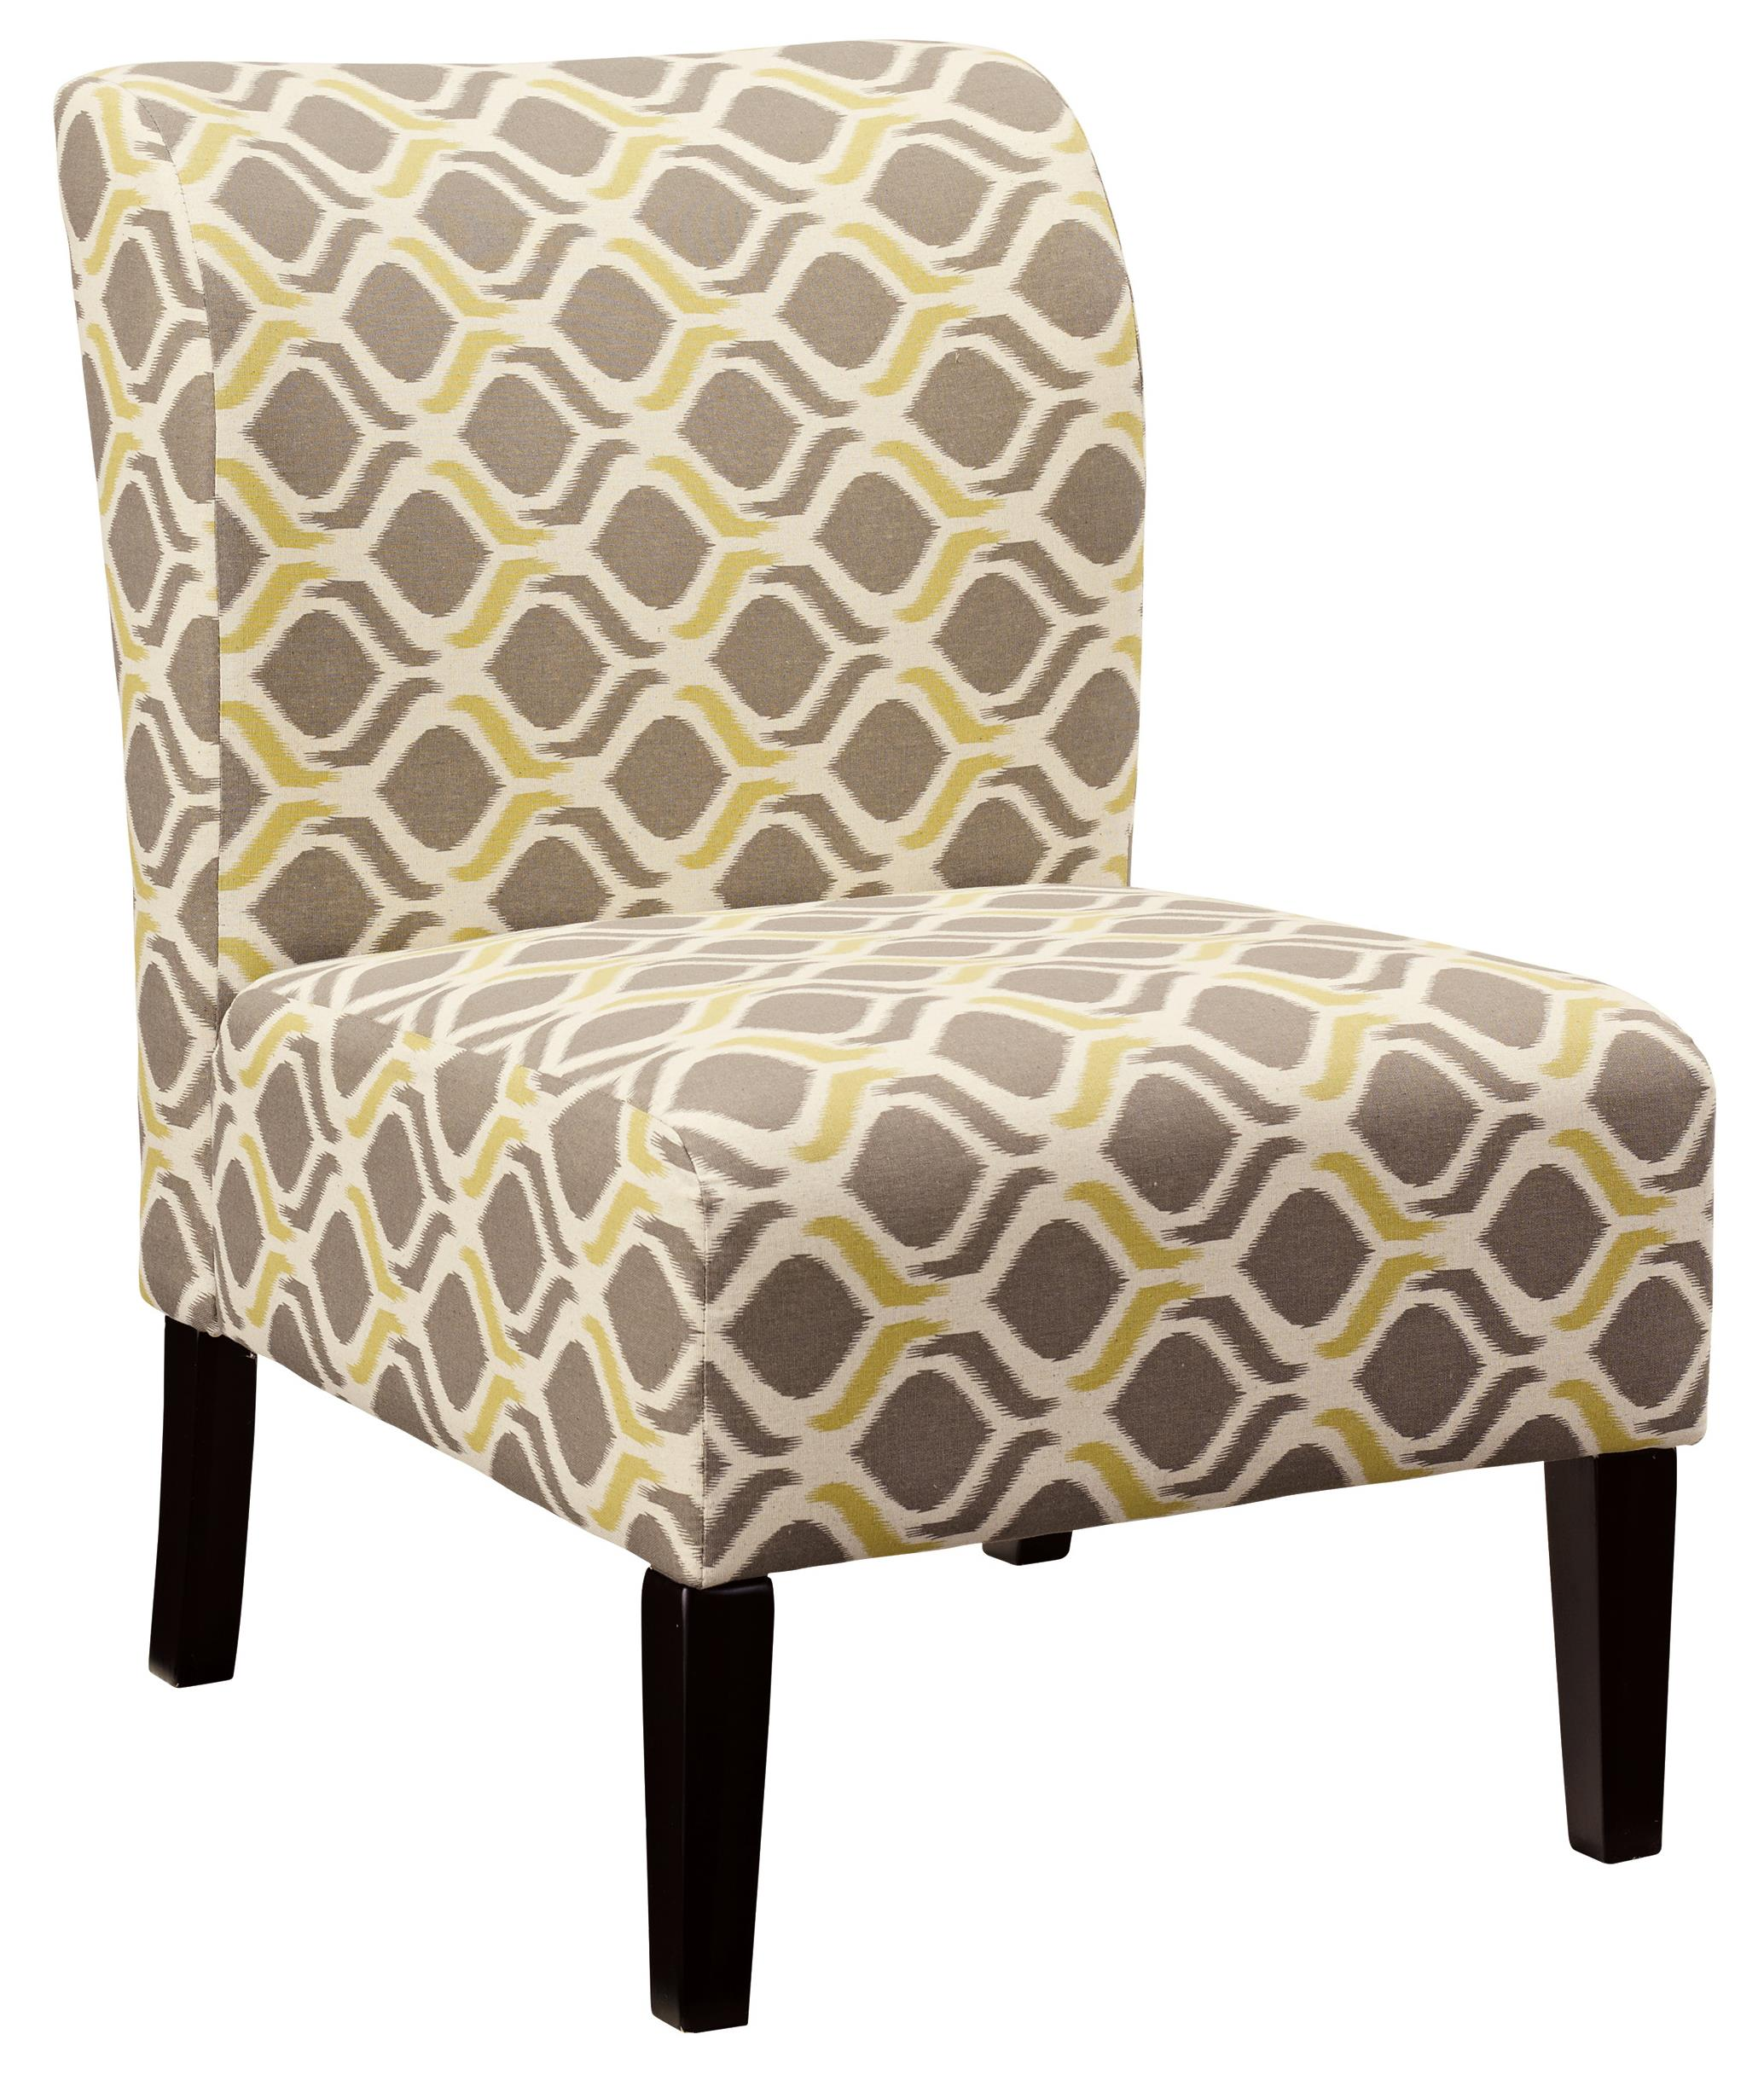 Signature Design by Ashley Honnally Accent Chair - Item Number: 5330560